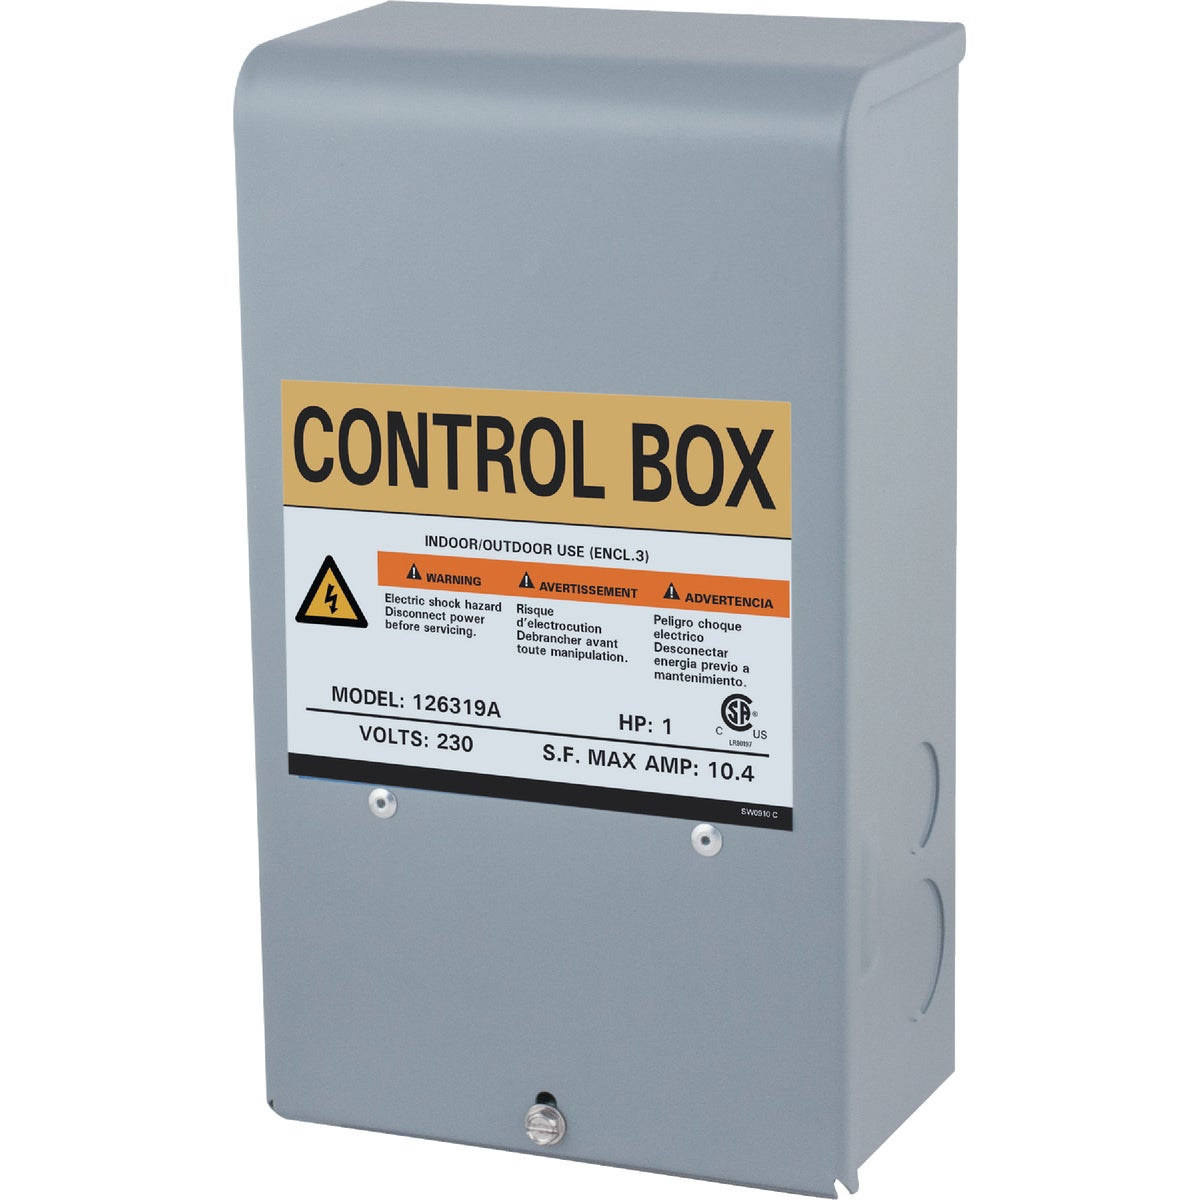 1HP 230V CONTROL BOX - 126319 by Star Water Systems